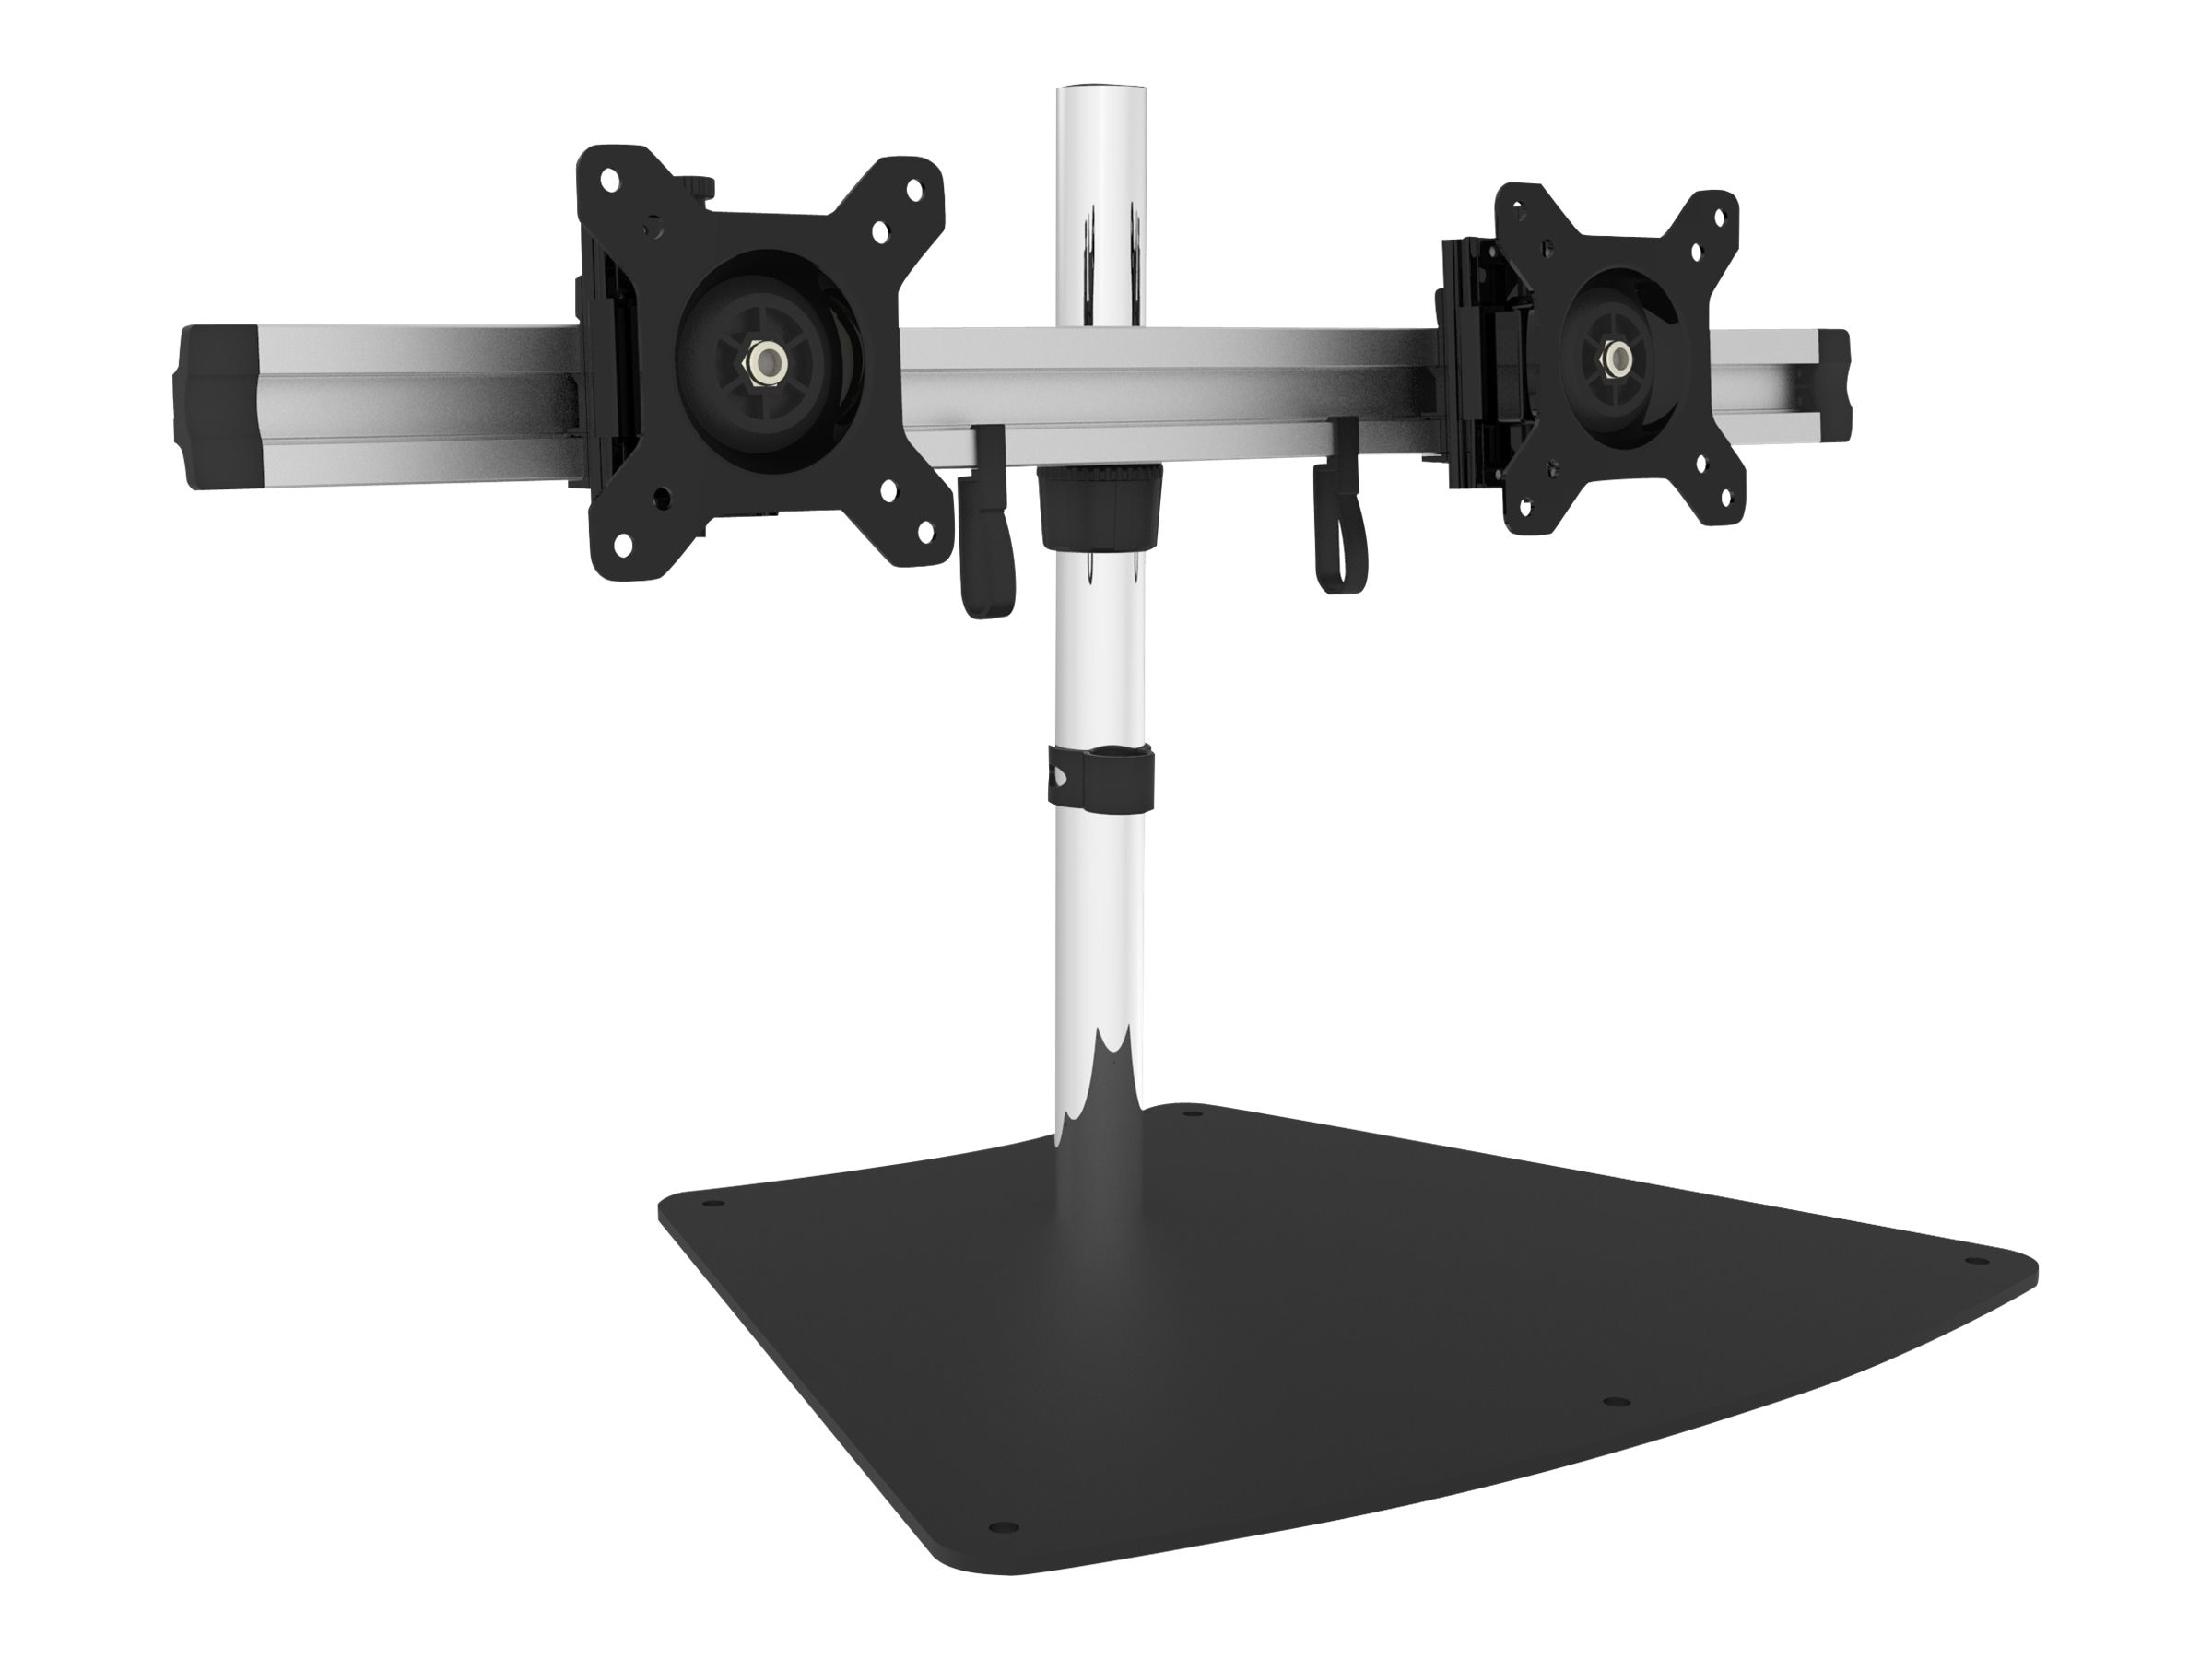 Siig Dual Monitor Desk Stand for 13-27 Displays, CE-MT2011-S1